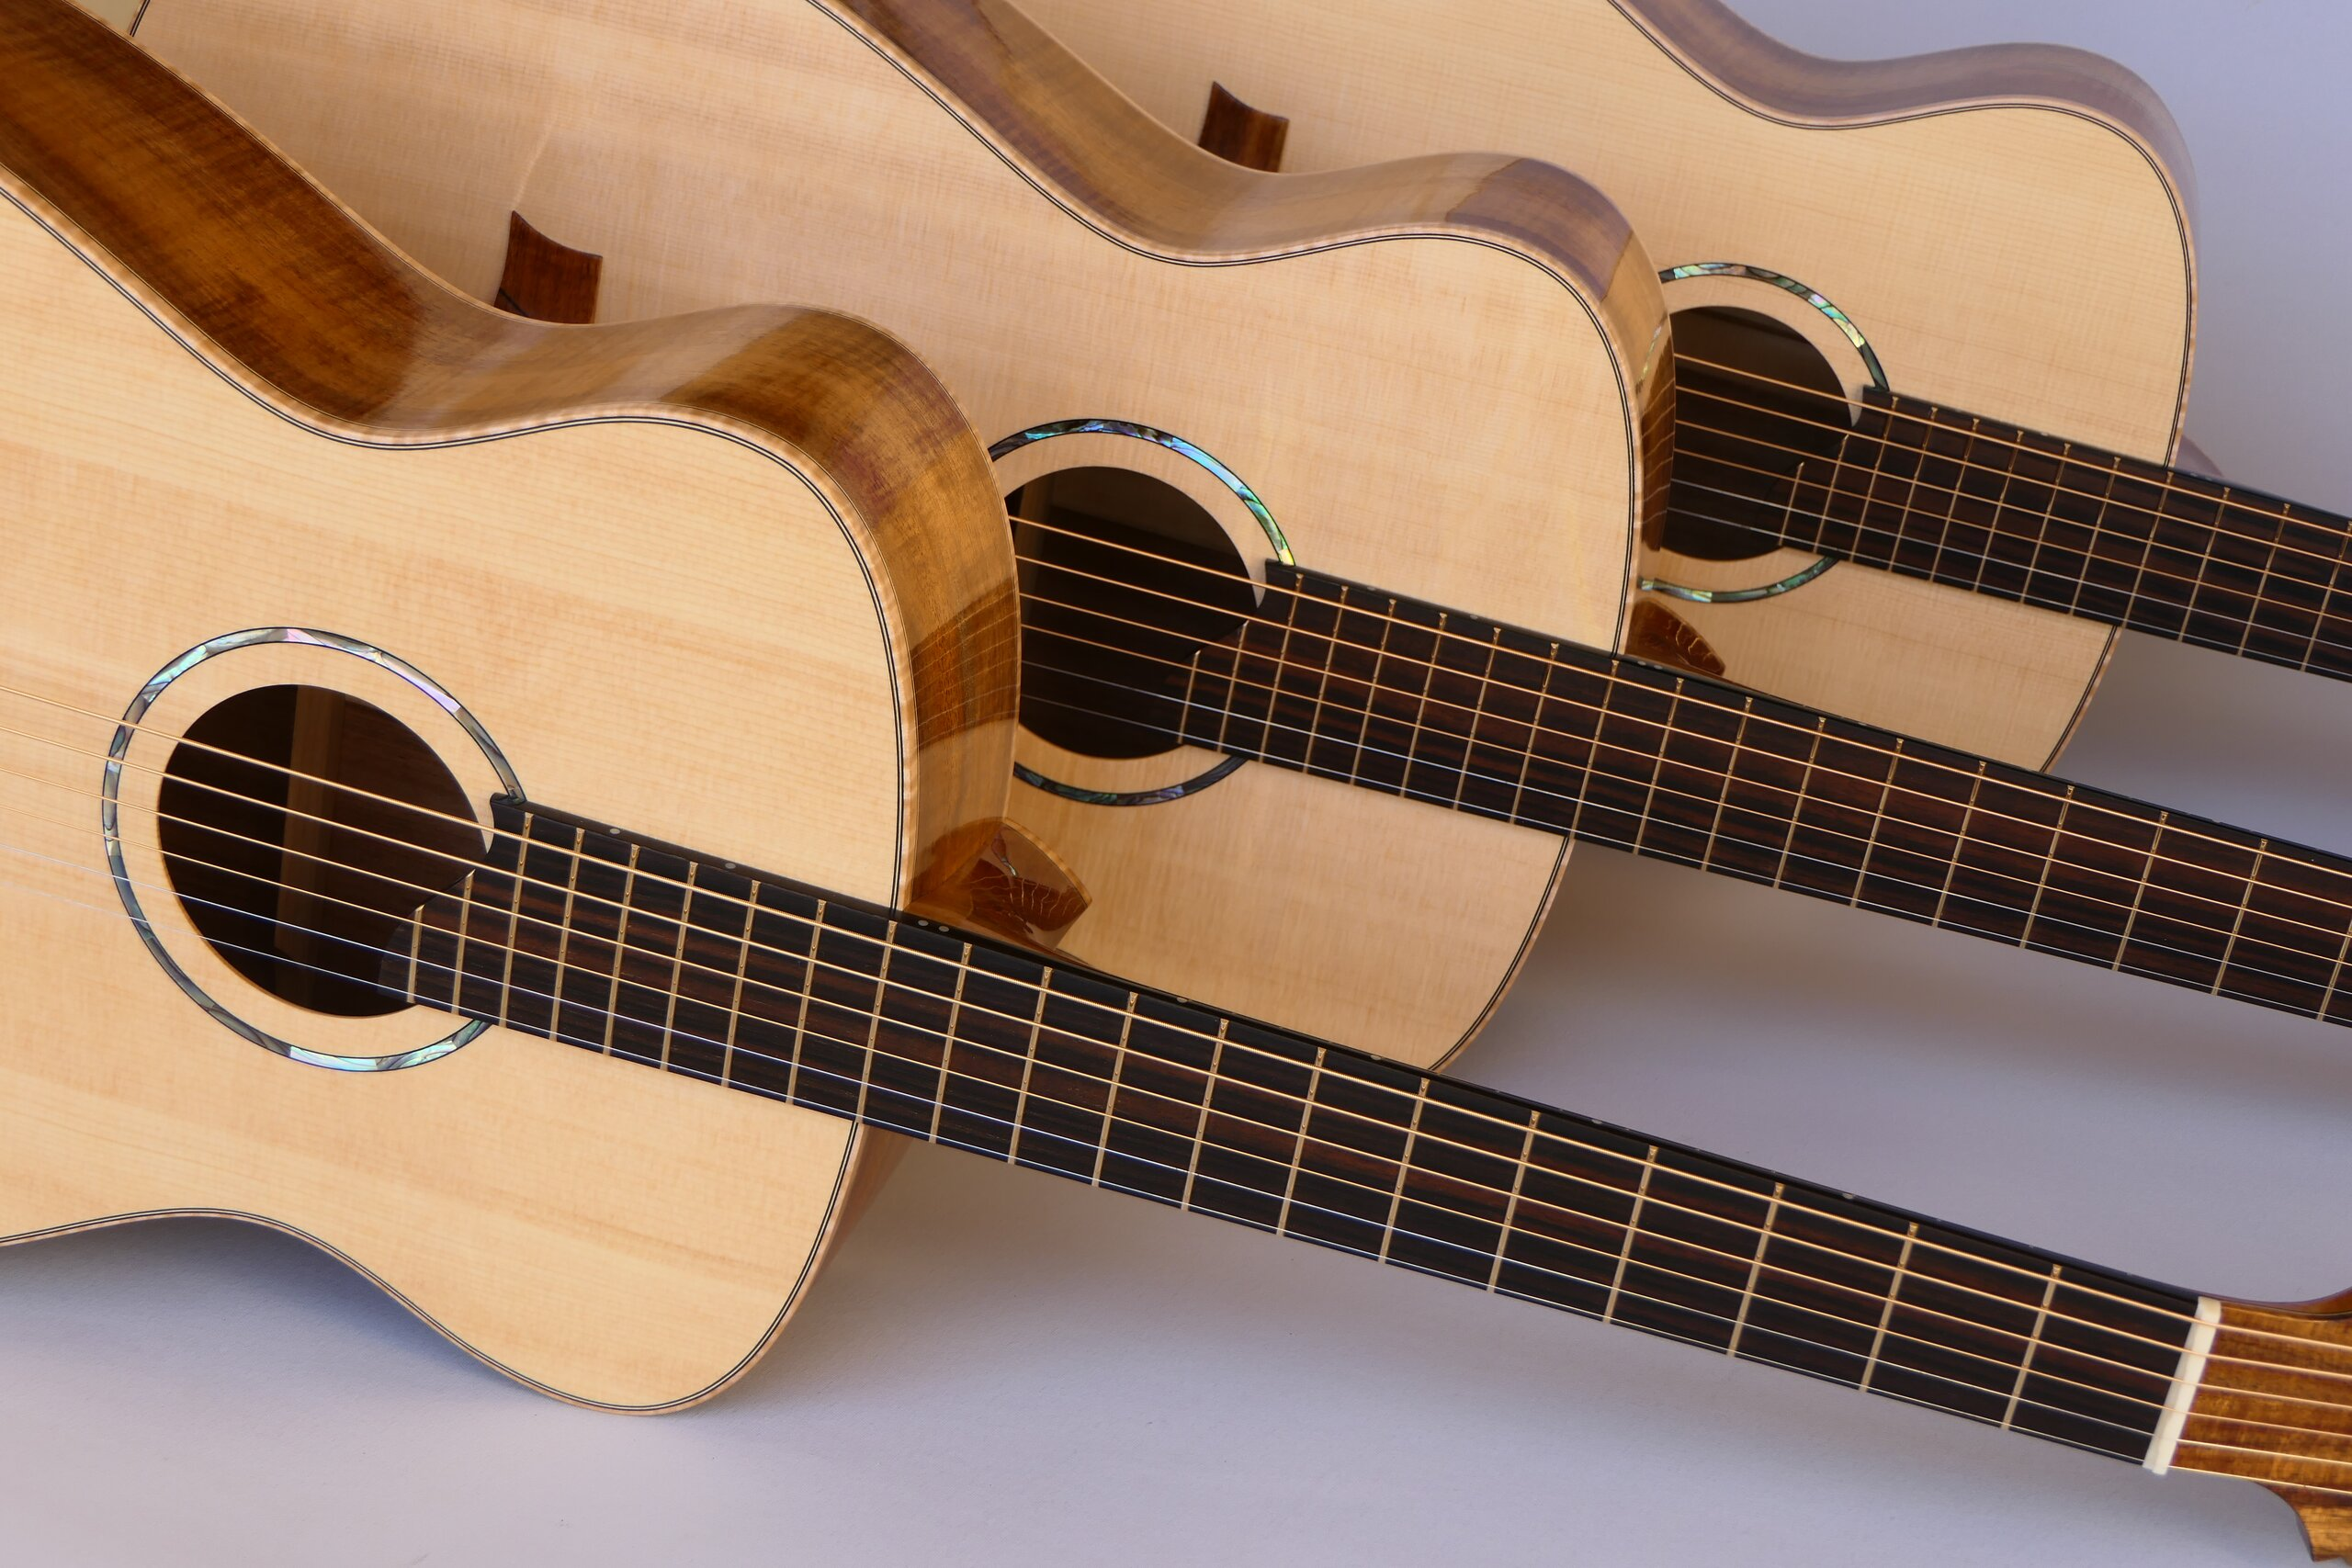 Matched set of three small body steel string guitars